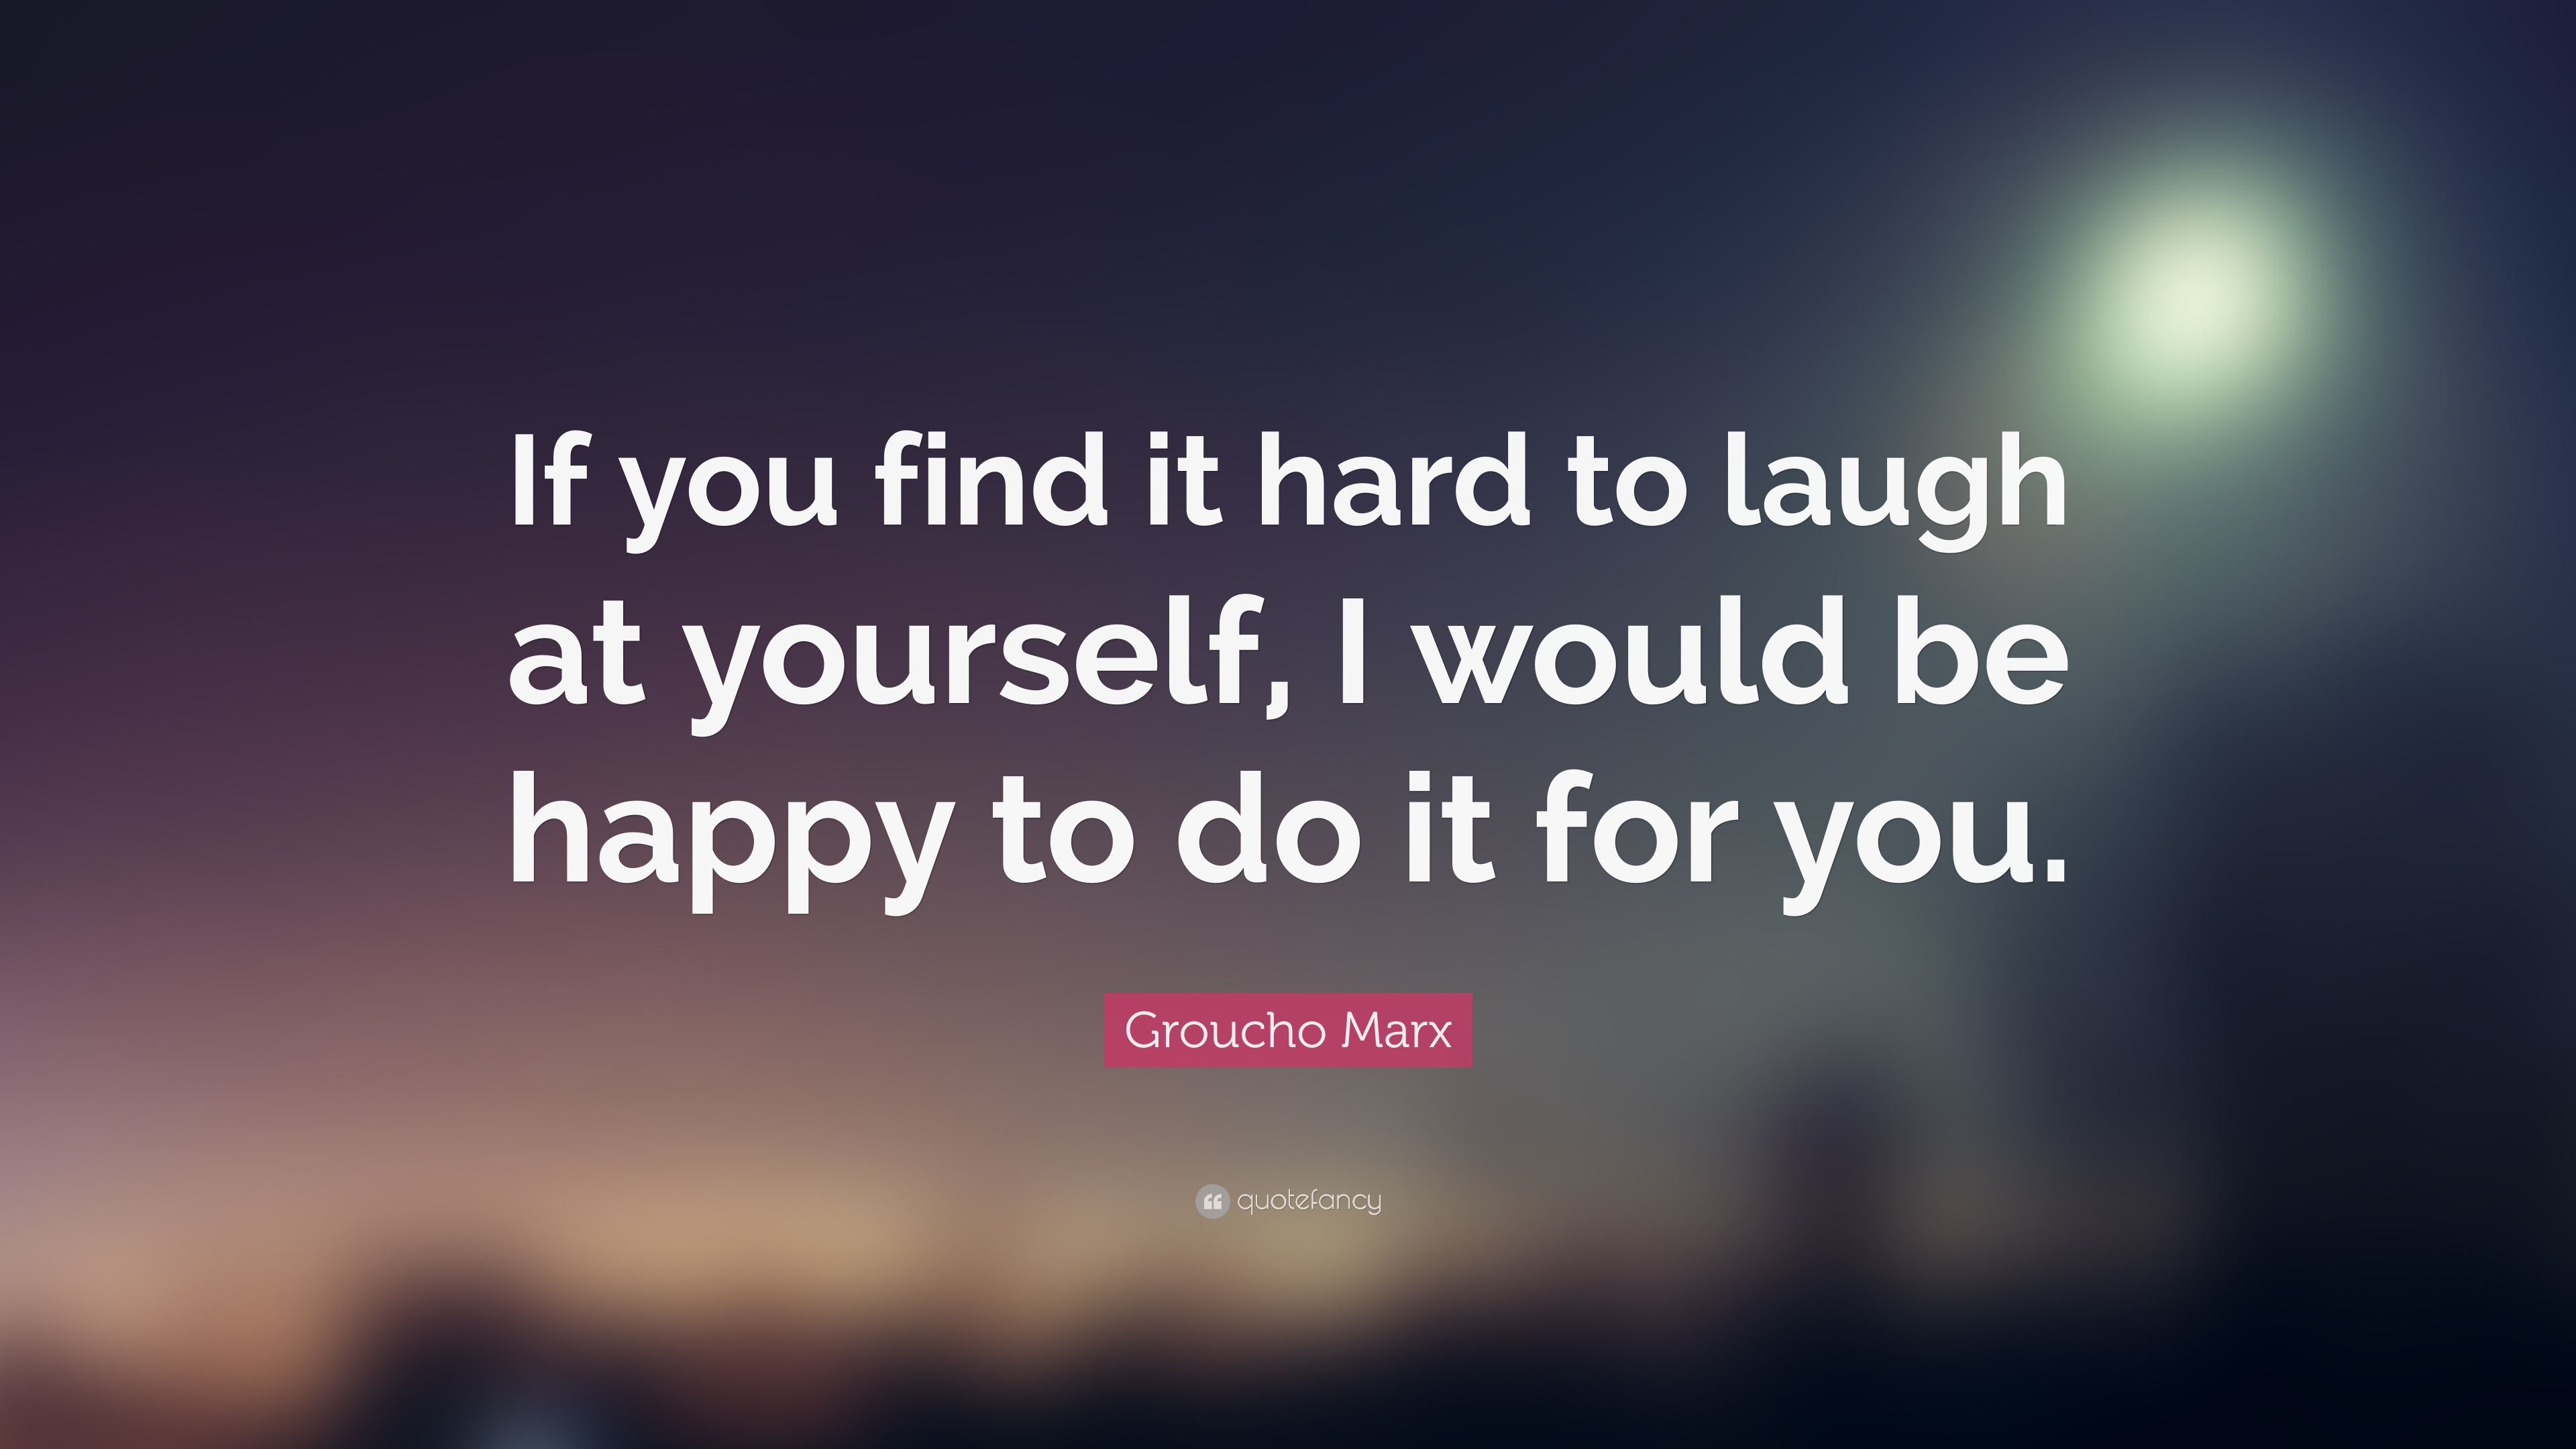 Groucho Marx Quote If You Find It Hard To Laugh At Yourself I